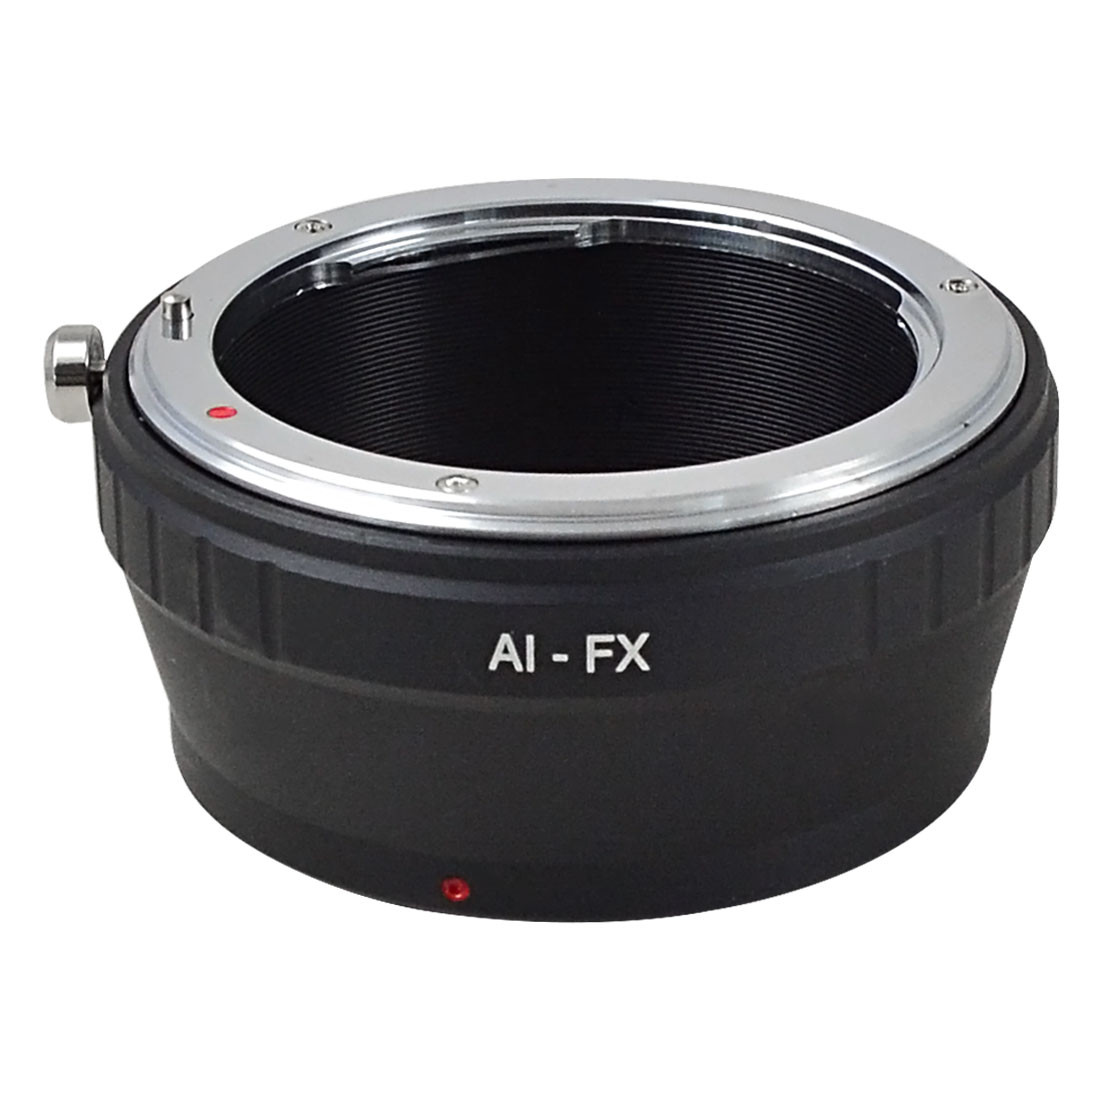 MENGS® AI-FX lens mount adapter ring aluminum and copper material for Nikon AI Lens to Fuji X Pro camera body